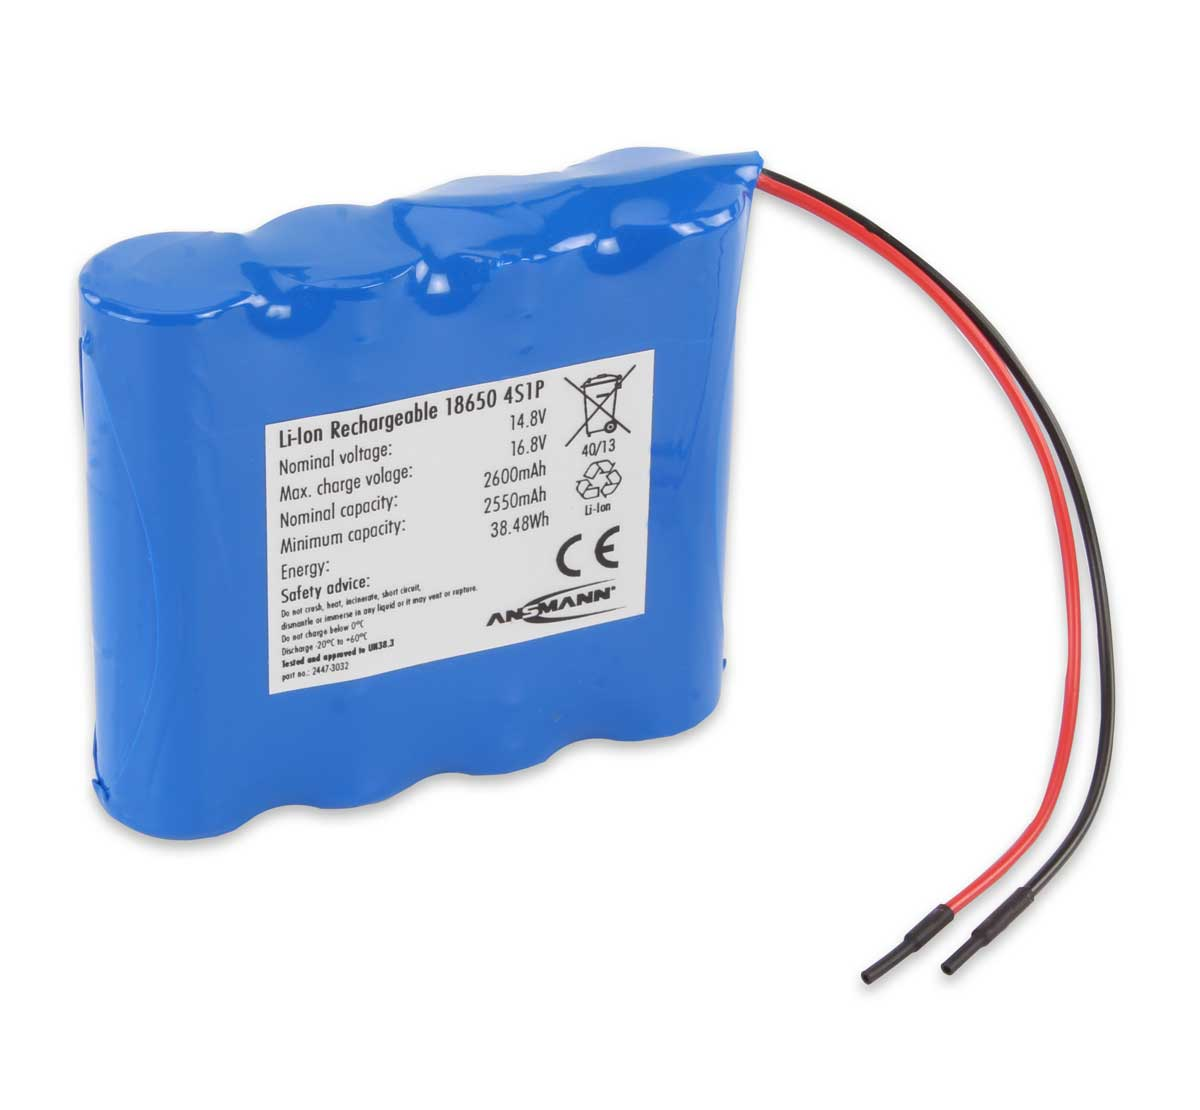 Ansmann Industrial 4S1P 14.8V 2600mAh In-Line Rechargeable Li-ion Battery Pack